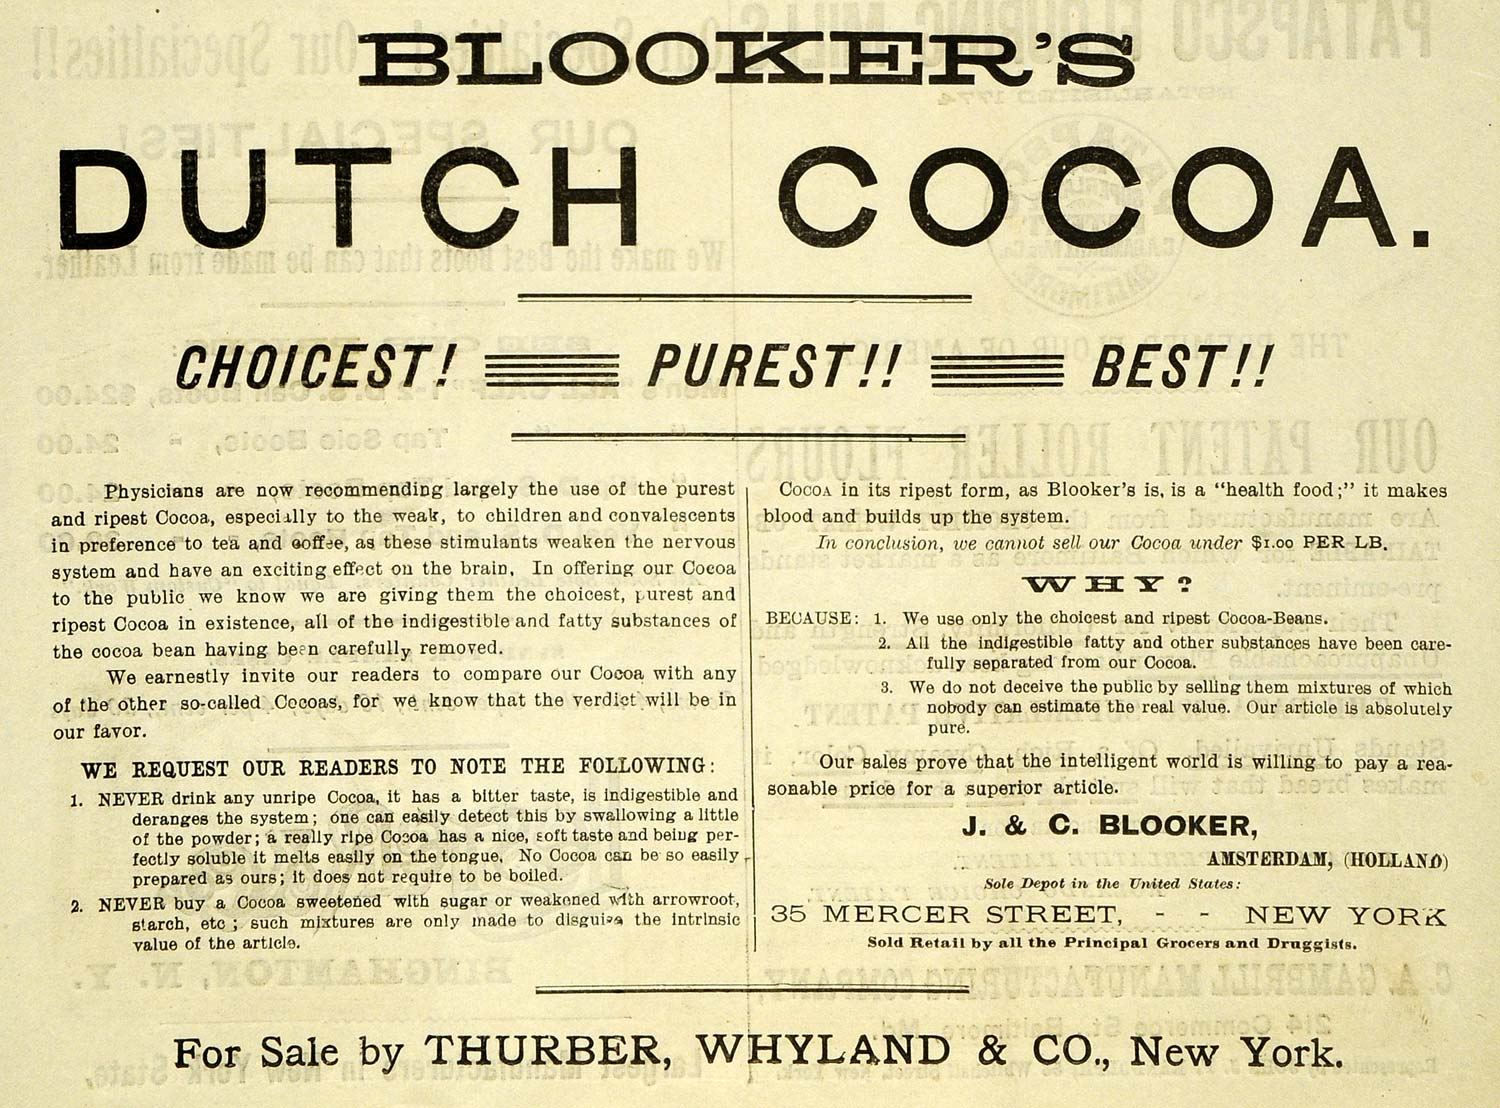 1889 Ad Blooker Dutch Cocoa Thurber Chocolate Baking - ORIGINAL GROC2